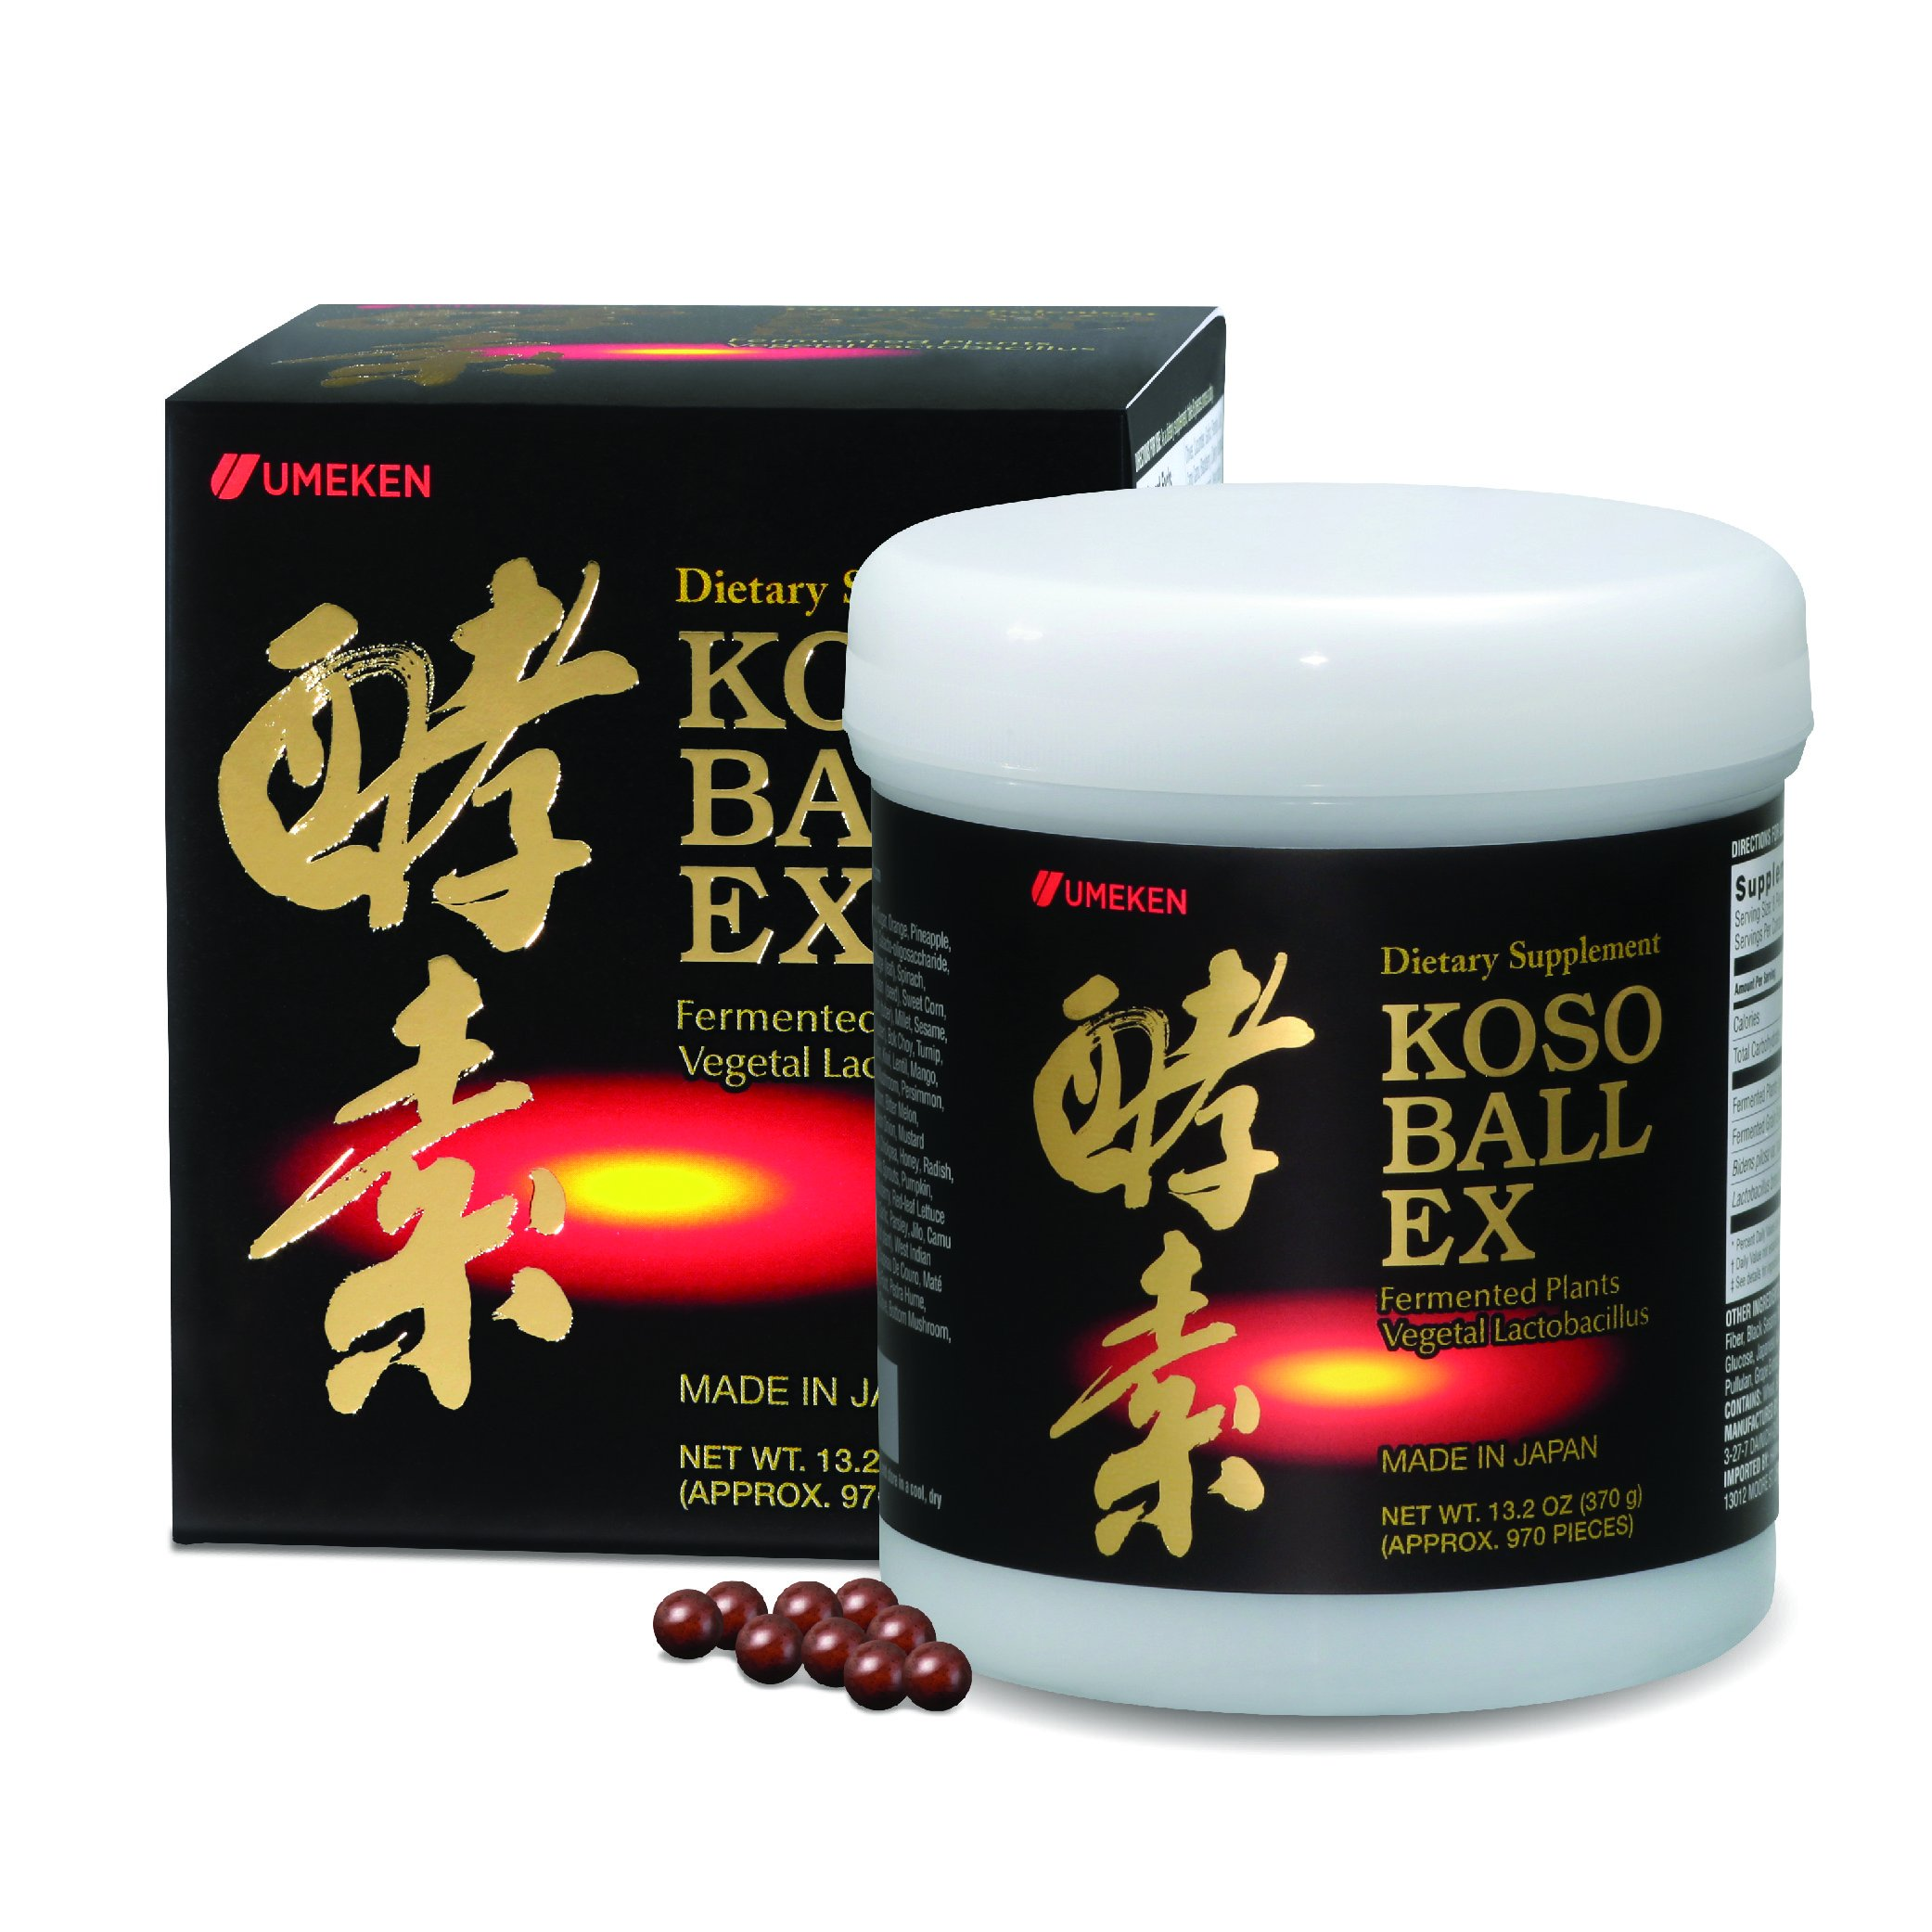 Umeken Koso Ball EX: New Fermented Fruits & Vegetables Extract Containing Enzymes. About 4 Month Supply. Made in Japan. Free Gift! Scroll to Promotions.